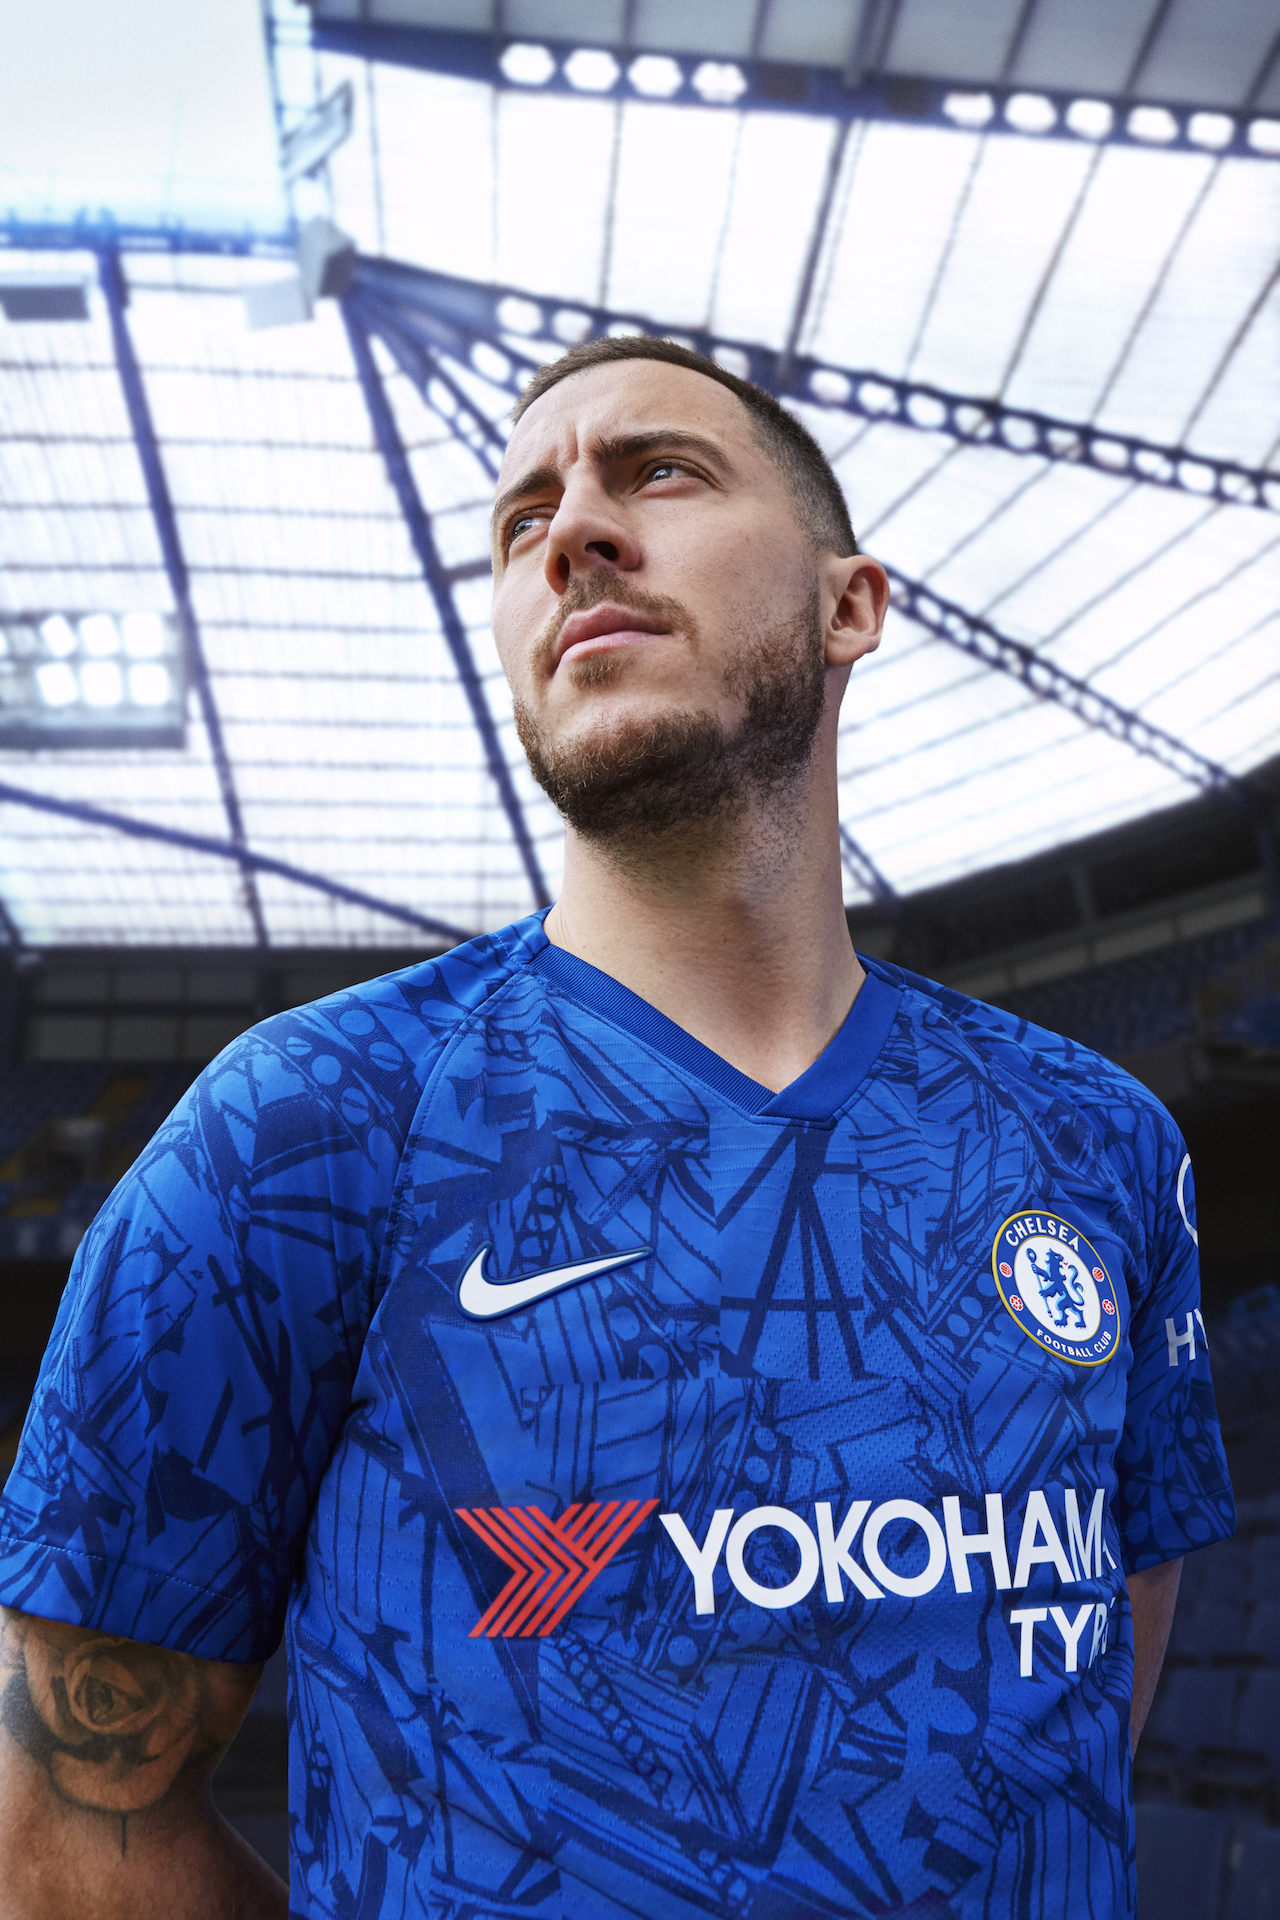 finest selection df218 ab7cf Chelsea introduce 2019-20 home kit with Eden Hazard front ...